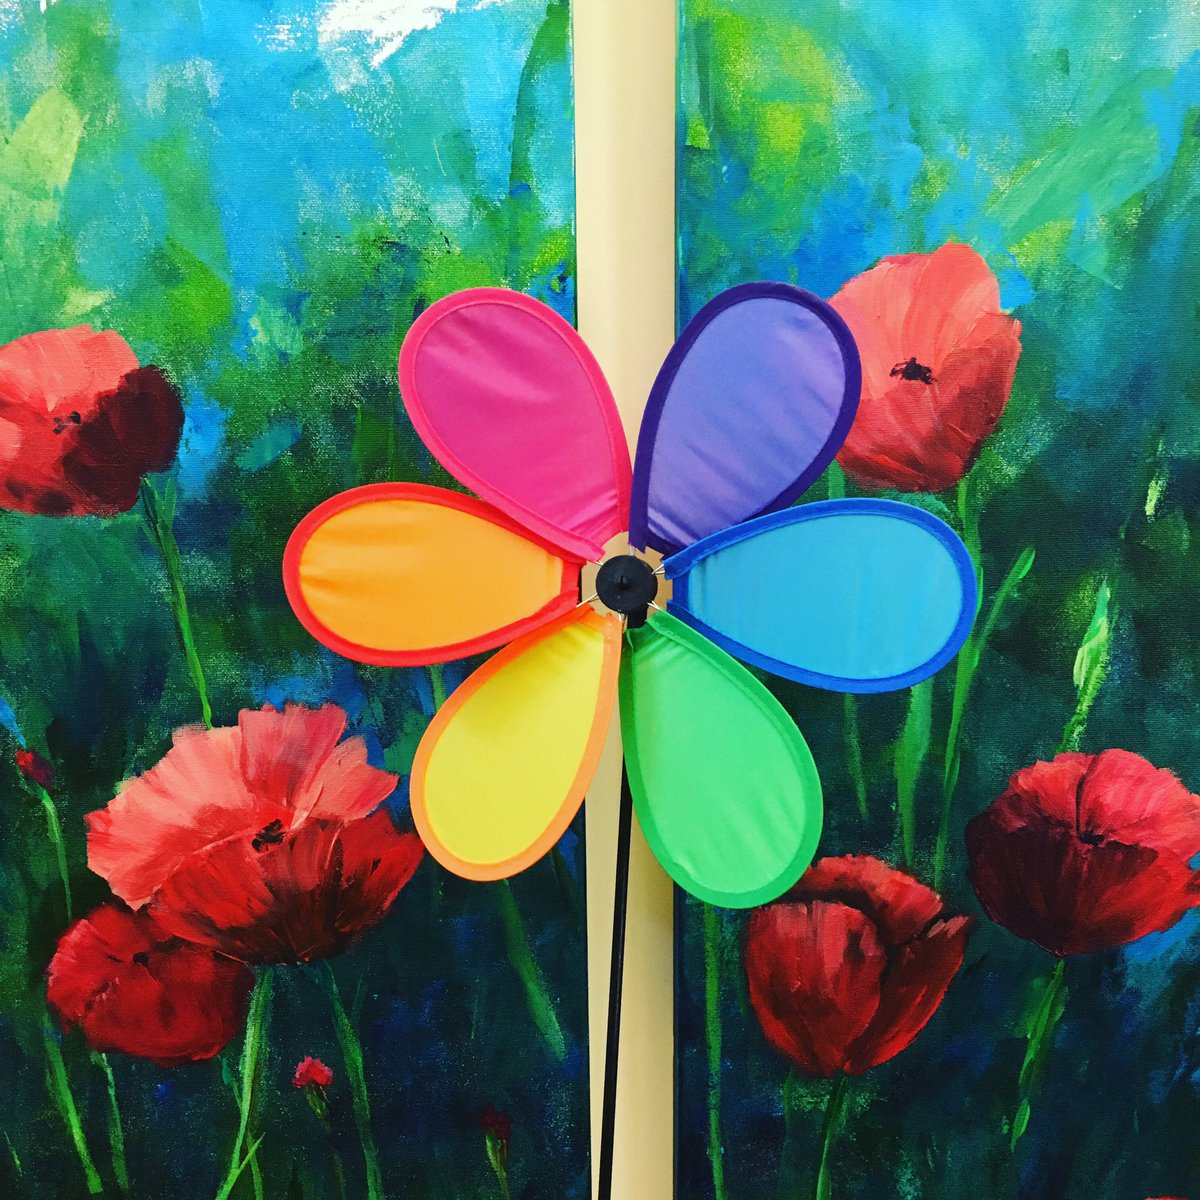 In honour of #hamiltonartsweek (June 14-21) and #pridemonth, we are sharing #flowerpower images of our inclusive art collection, with a little extra rainbow of colour added! #safespace #safe #marypatfuchs #lgbtq #lgbtq2s+ #pride #wellwood @HamArtsCouncil @HamiltonPride #HamOnt